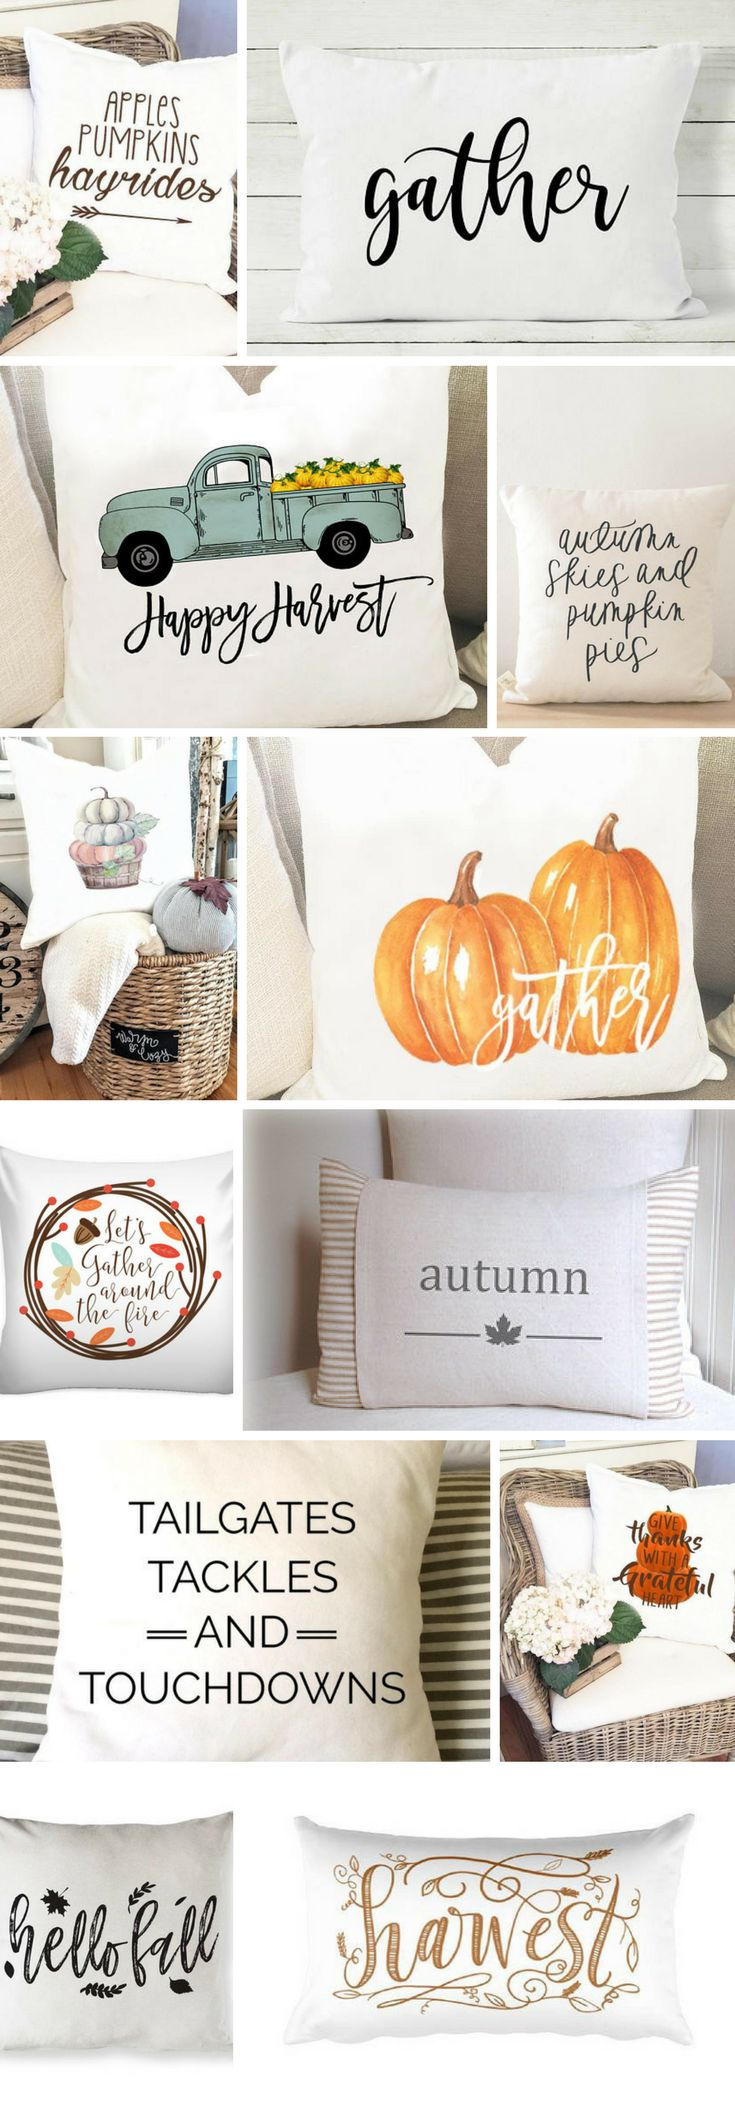 These fall pillows will look perfect in your fixer upper style or pottery barn style home! These are handmade  pillow covers from the best etsy designers. #fall